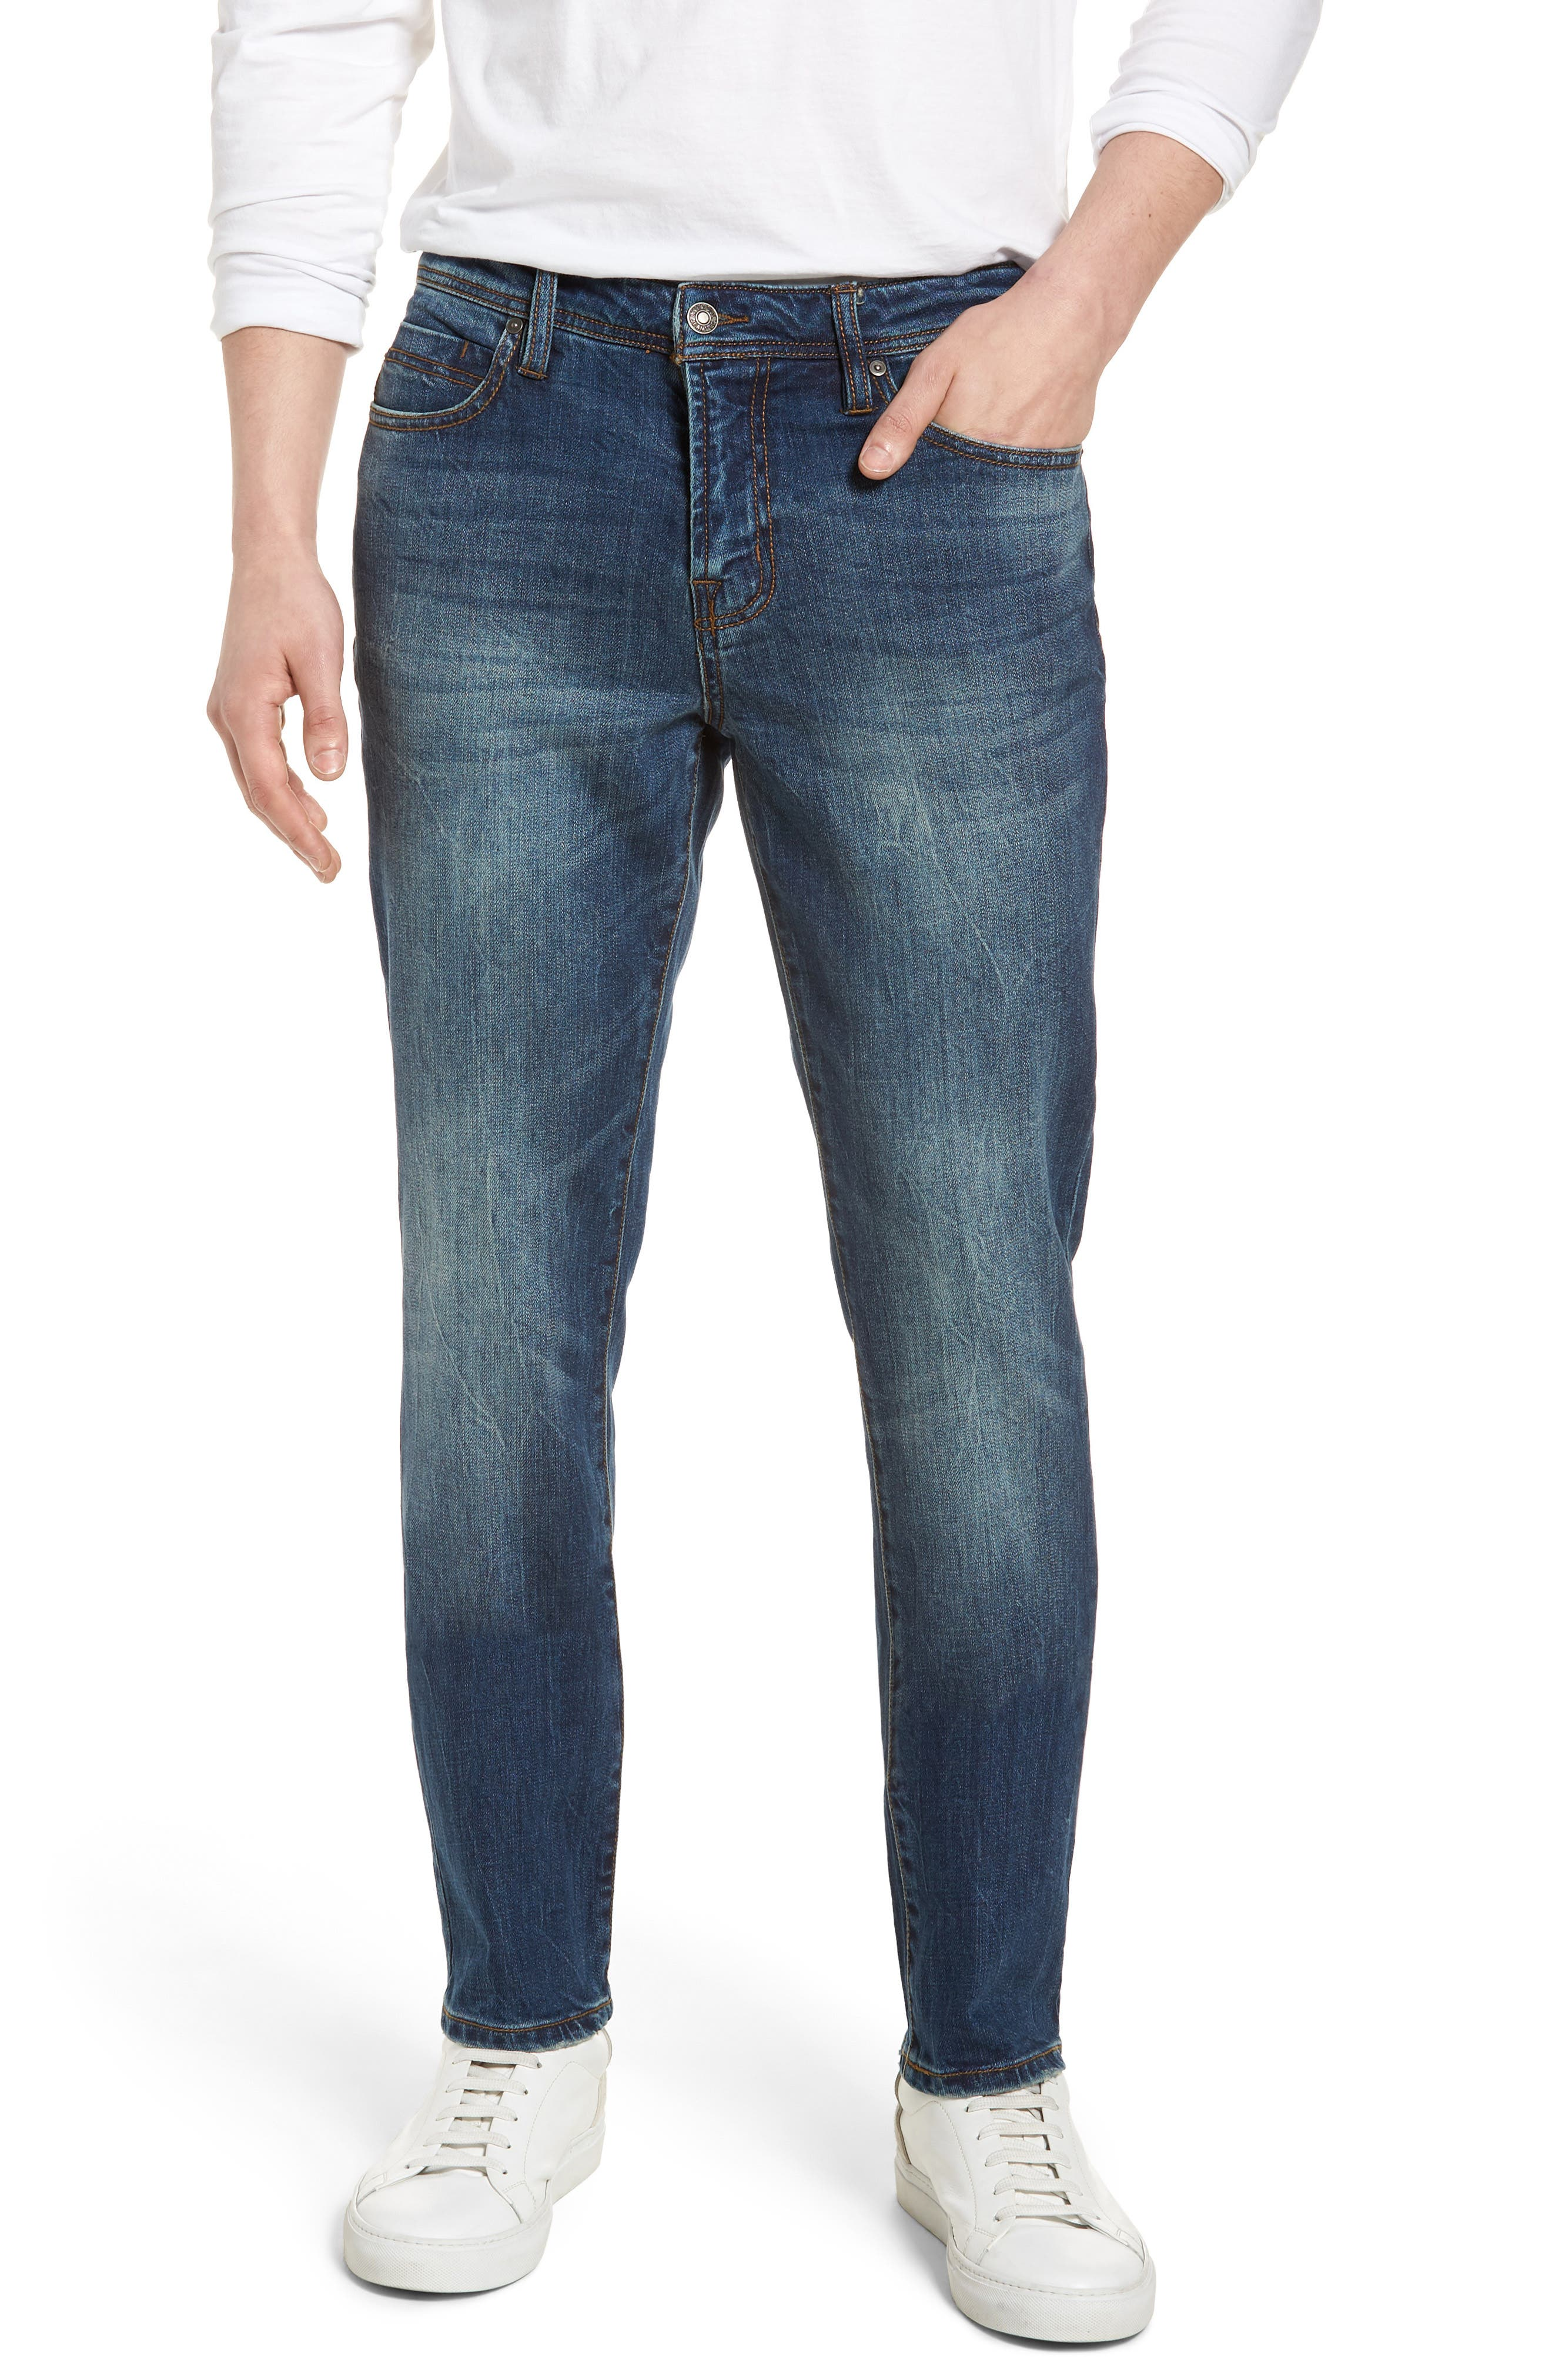 Jeans Co. Kingston Slim Straight Leg Jeans,                             Main thumbnail 1, color,                             Odessa Vintage Dark